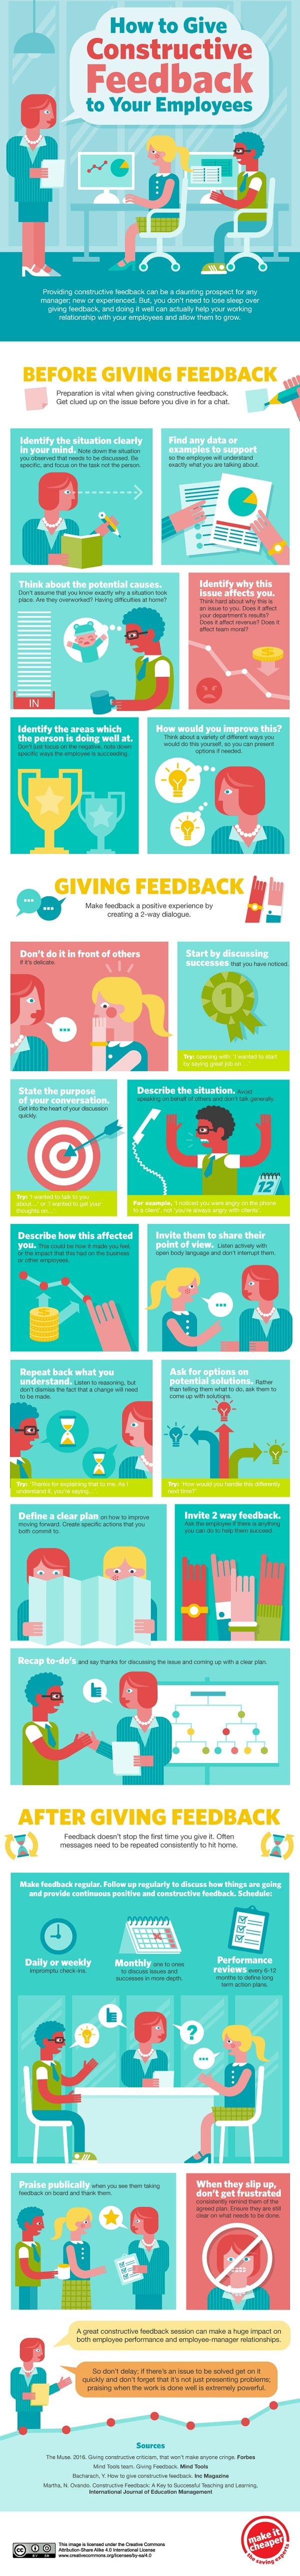 Infographic: How To Give Constructive Feedback To Your Employees - DesignTAXI.com